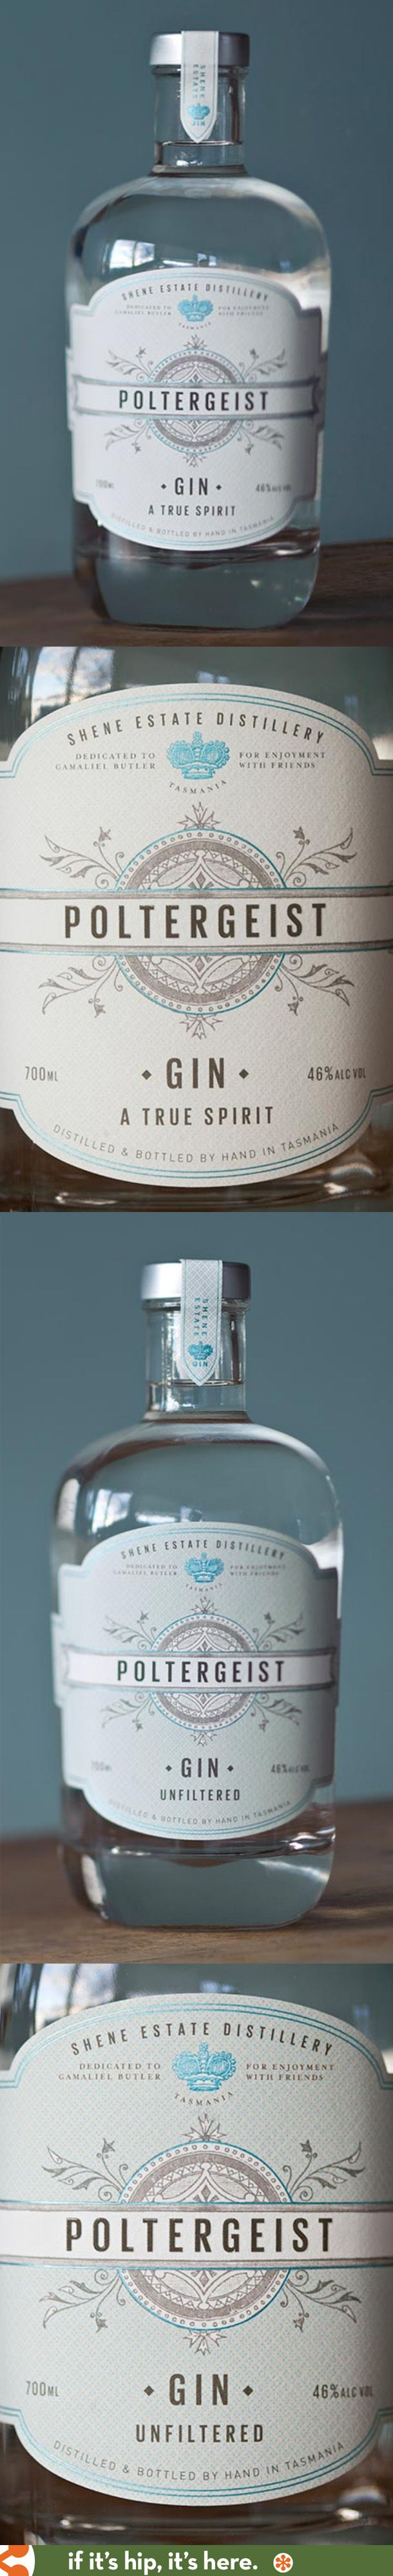 Tasmania's Poltergeist Gins in regular and unfiltered with lovely label designs. Shene Estate Distilling.